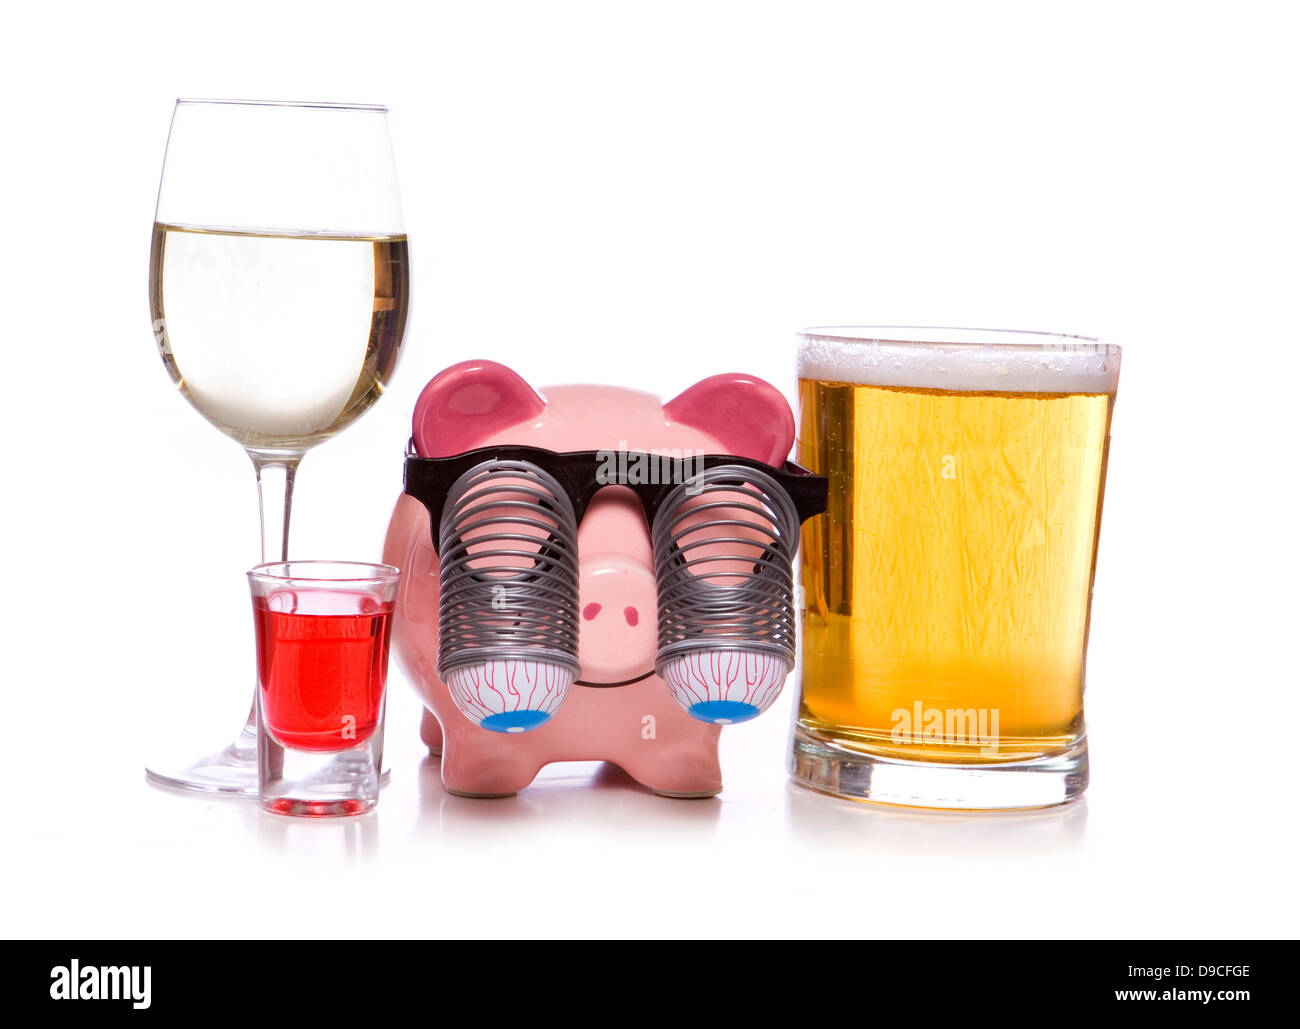 Stock White Binge Drinking A Photo - Alamy Background On 57438654